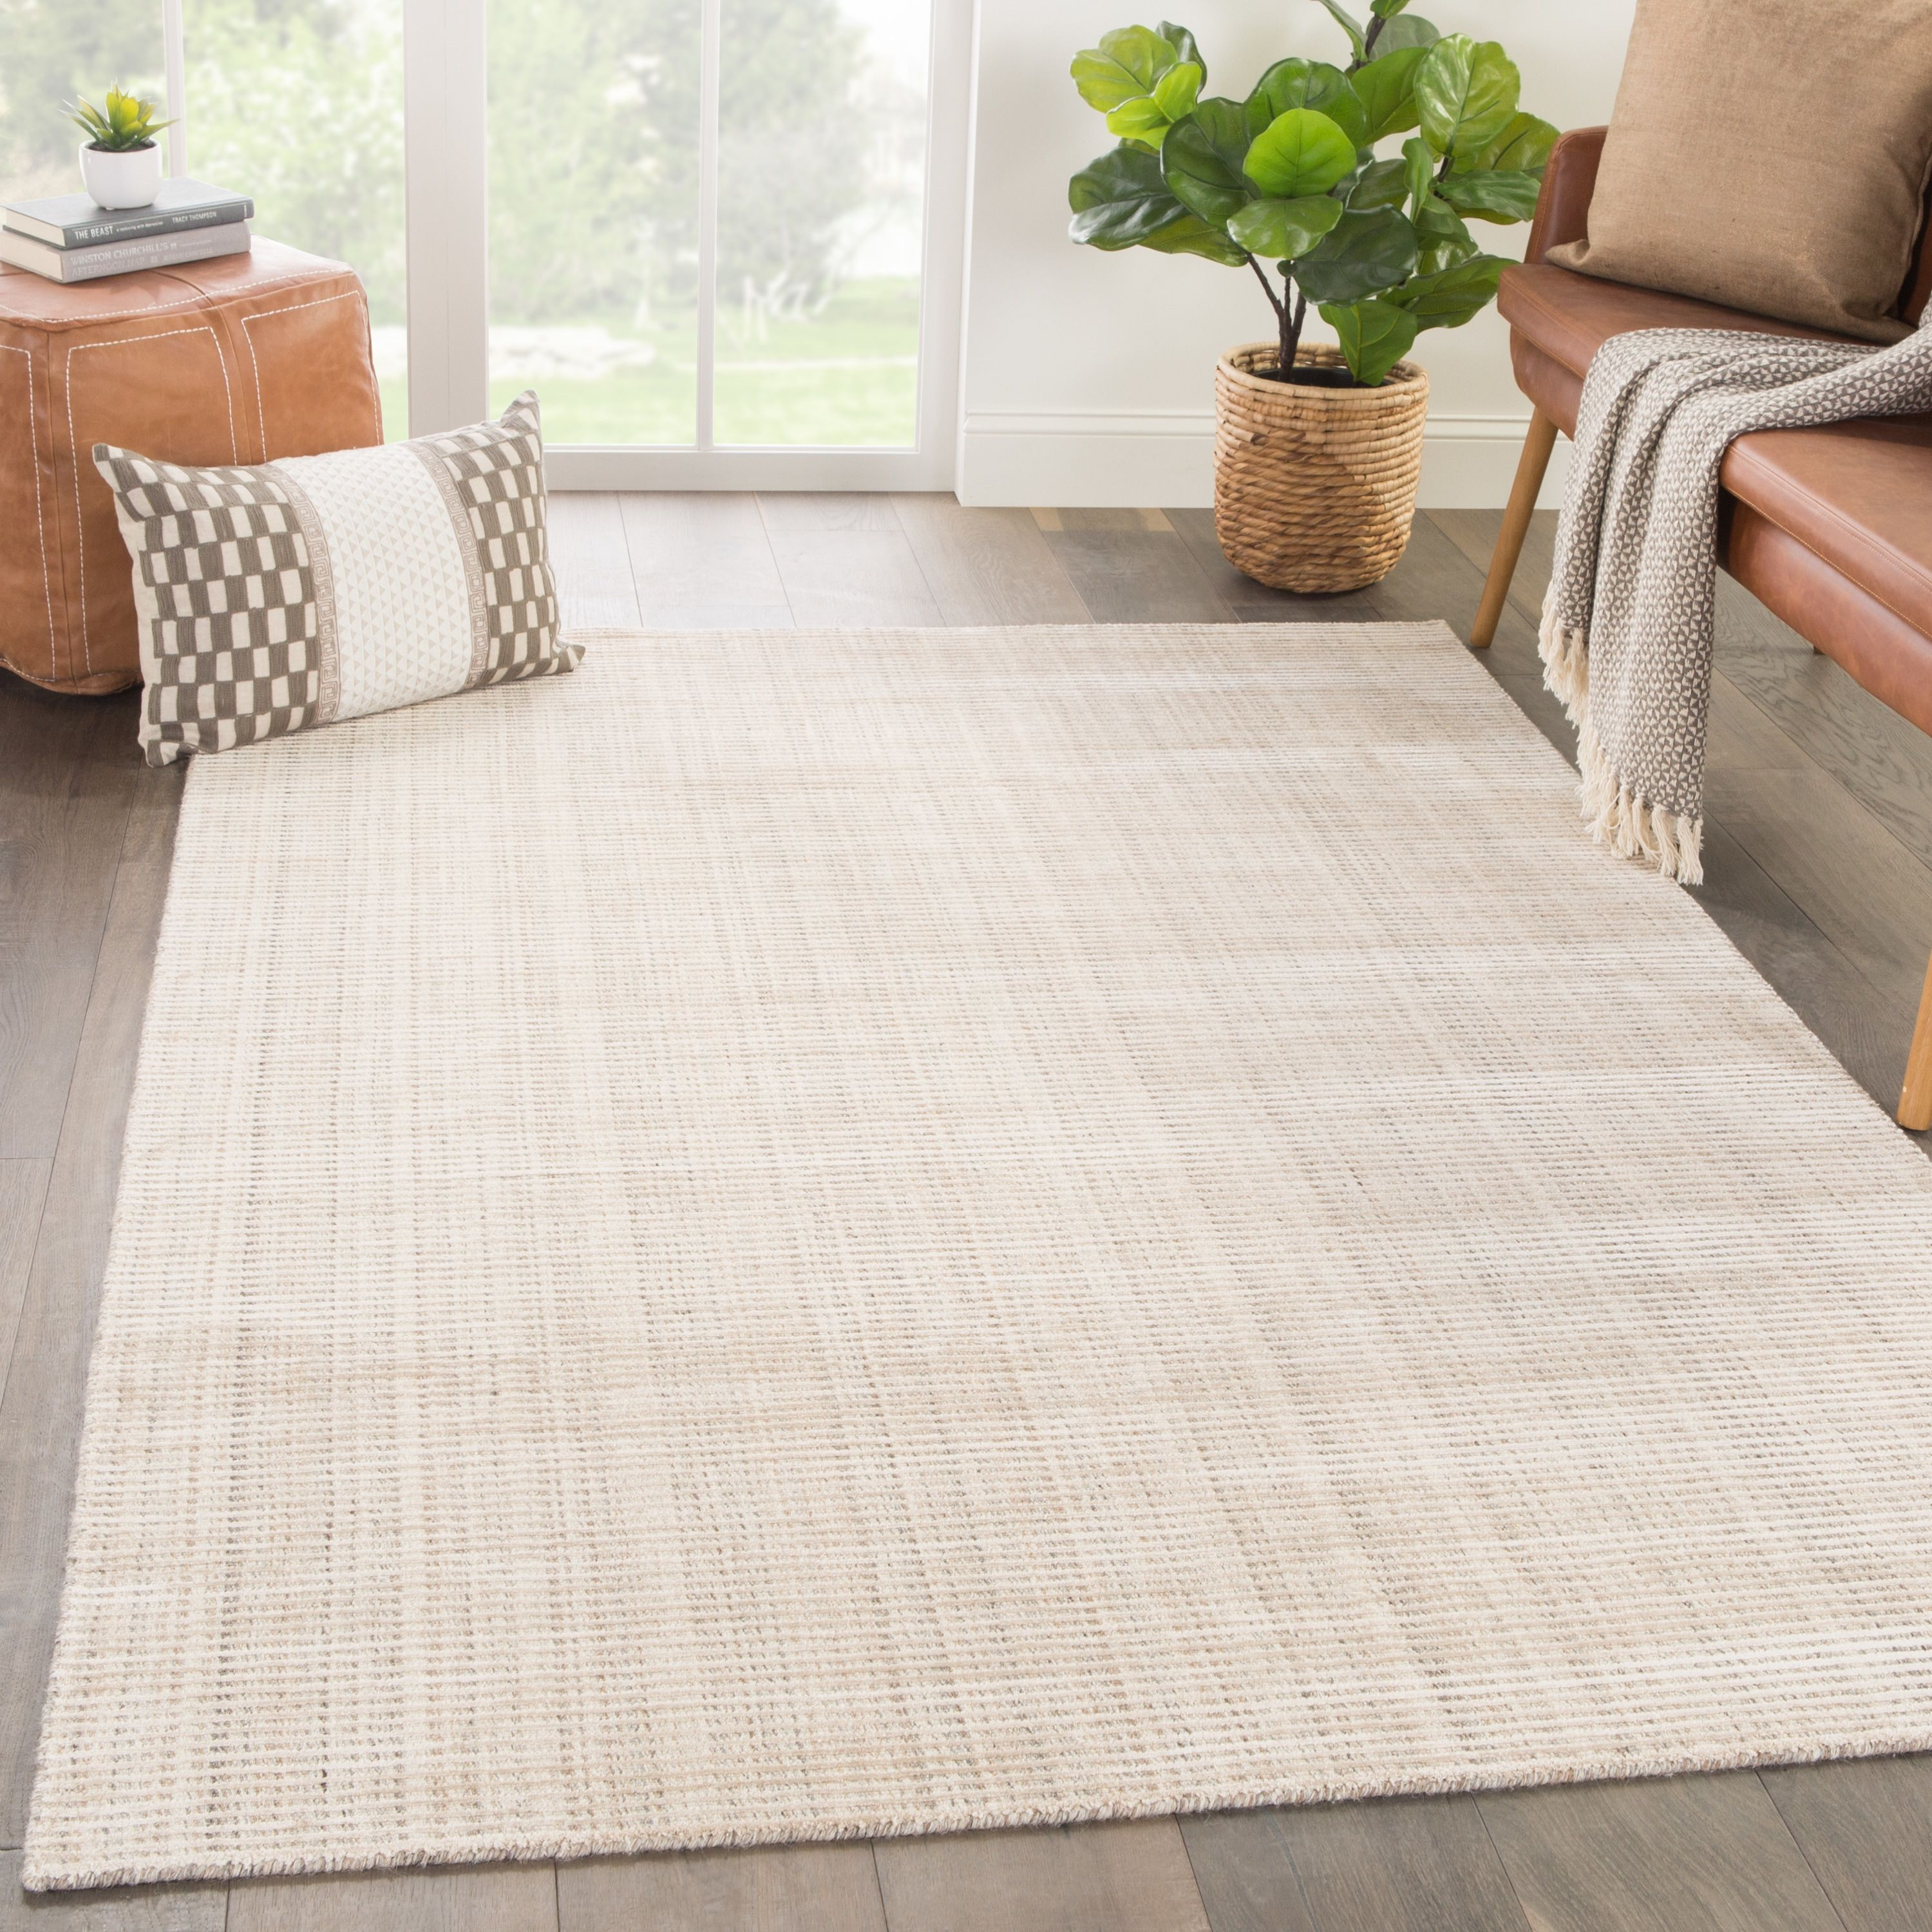 Phase Handmade Solid Ivory Beige Area Rug 10 X 14 10 X14 Ivory Beige 10 X14 Juniper Home Beige Area Rugs Online Home Decor Stores Area Rug Sizes